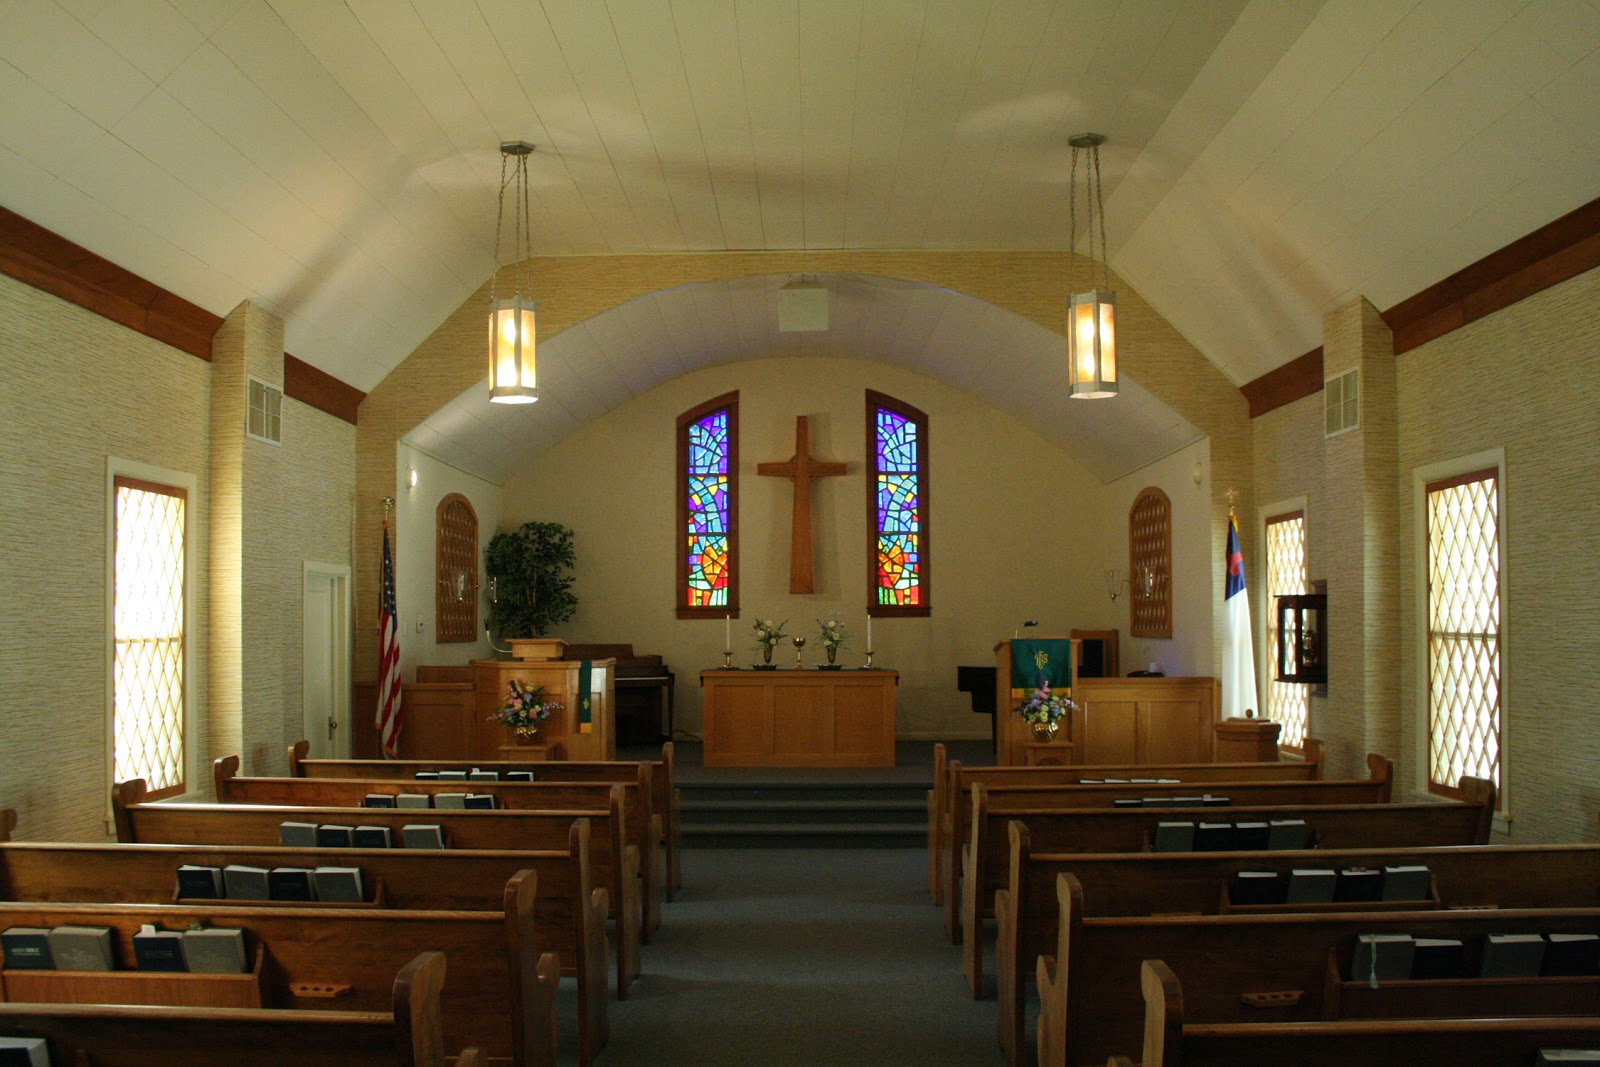 small church interior psoriasisgurucom - Church Interior Design Ideas